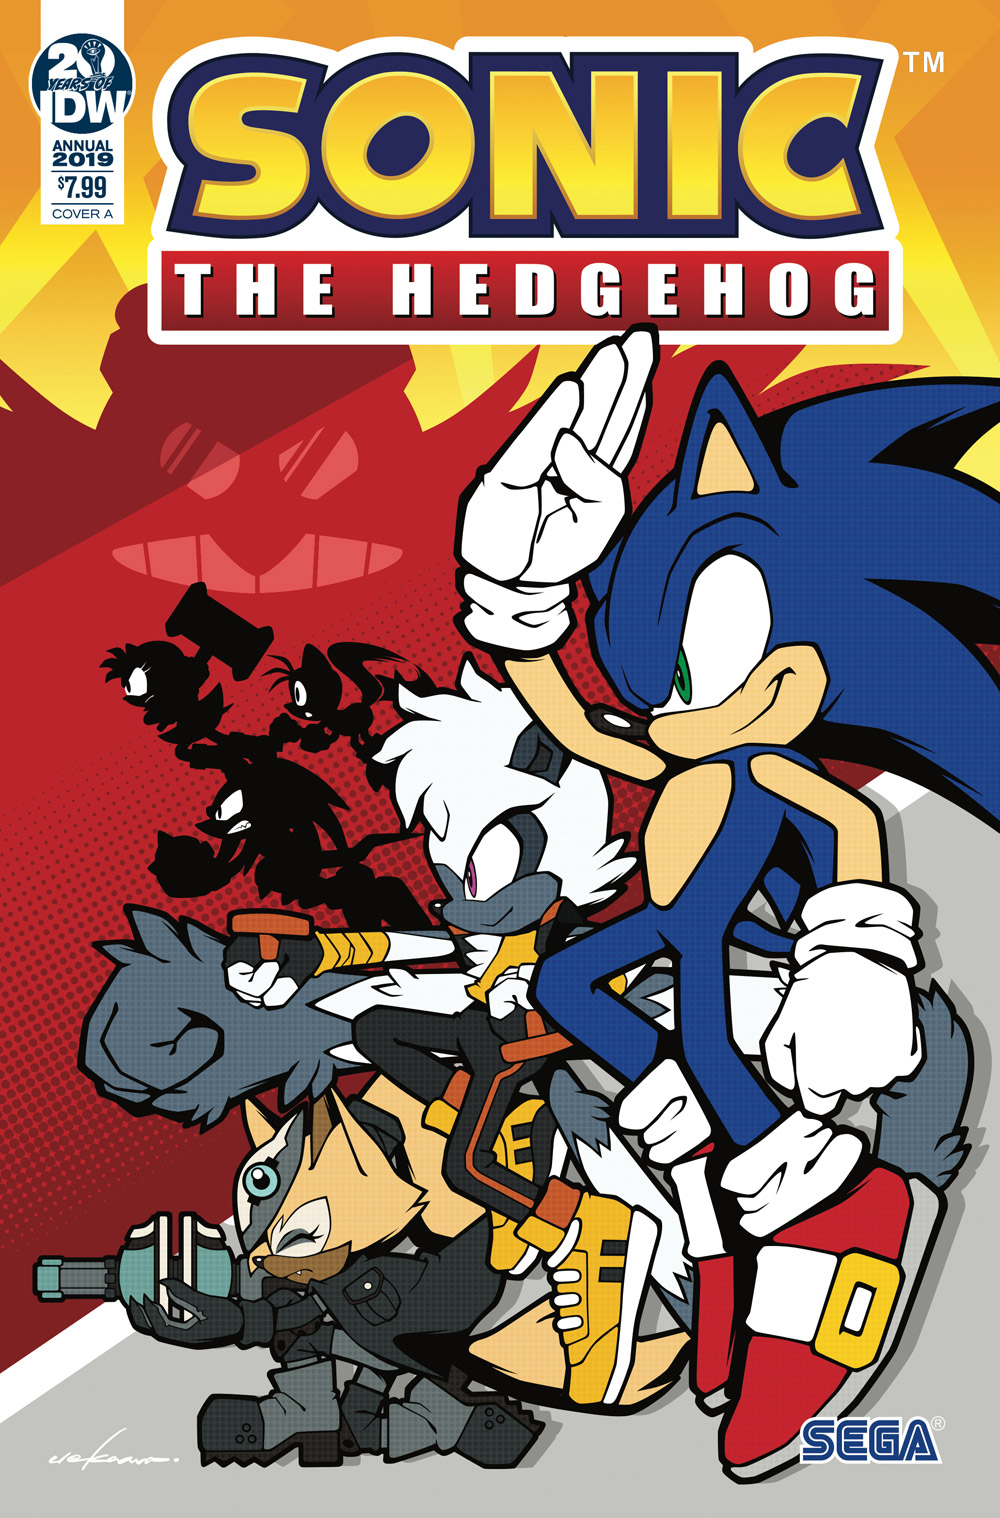 Sonic The Hedgehog Comics Build Momentum With Sold Out Annual And Ongoing Series Previews World